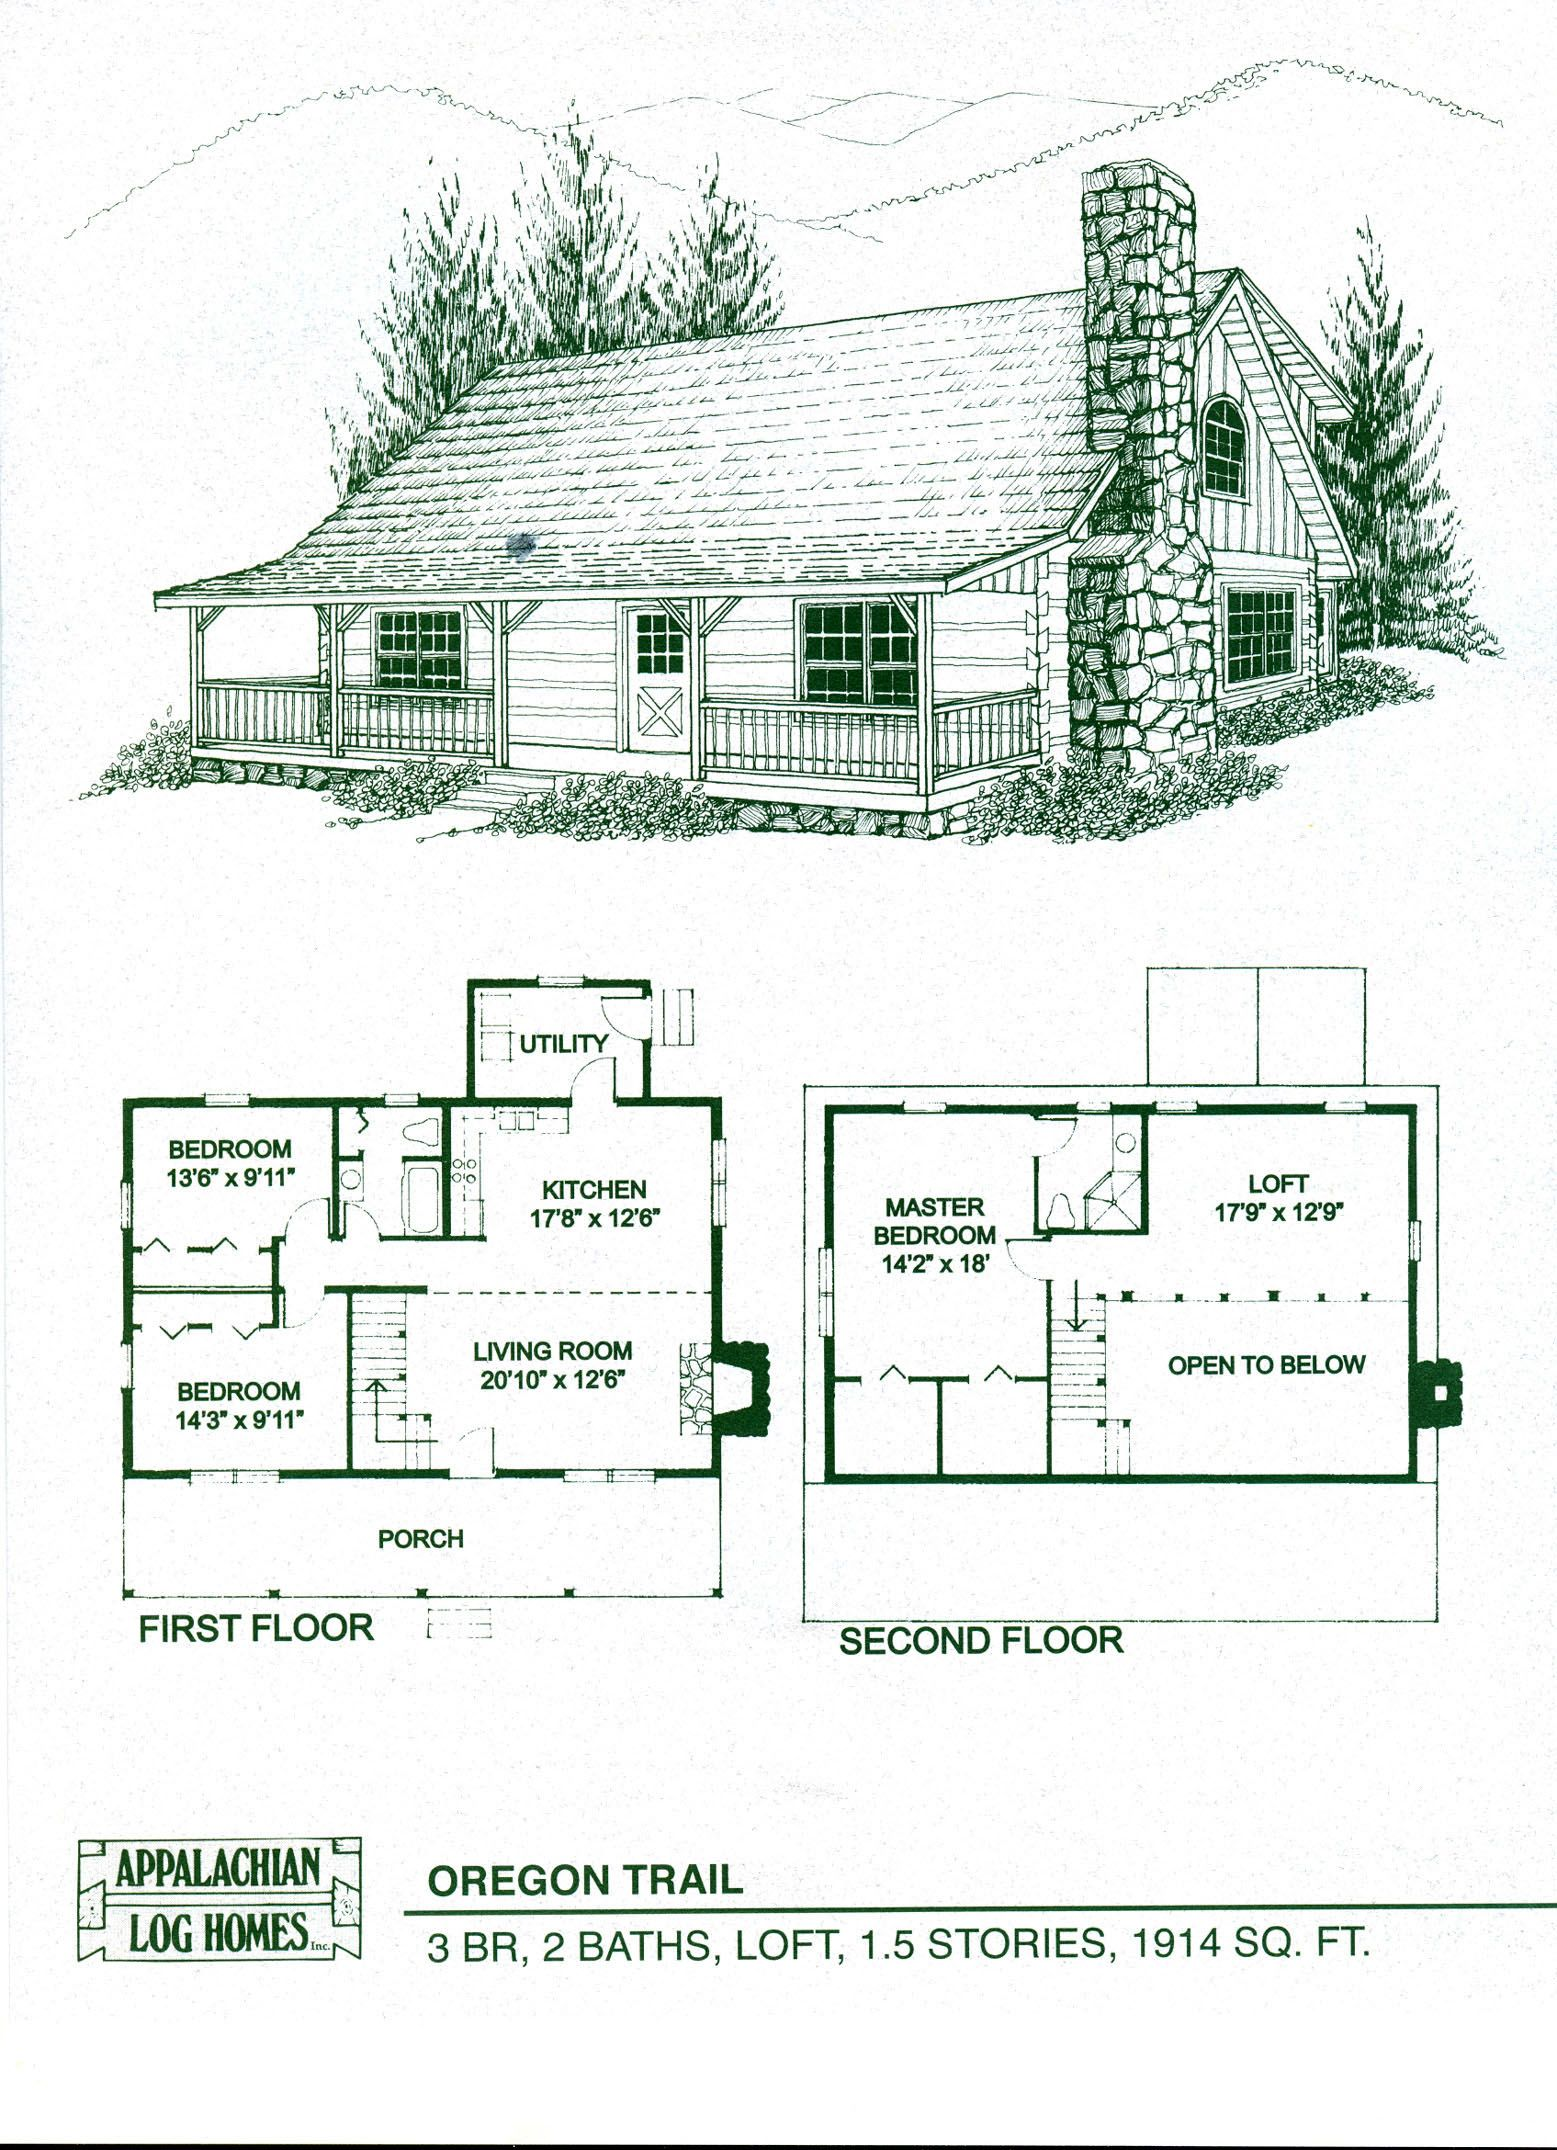 Log Home Floor Plans Log Cabin Kits Appalachian Log Homes Log Cabin Floor Plans Cabin House Plans Log Home Floor Plans